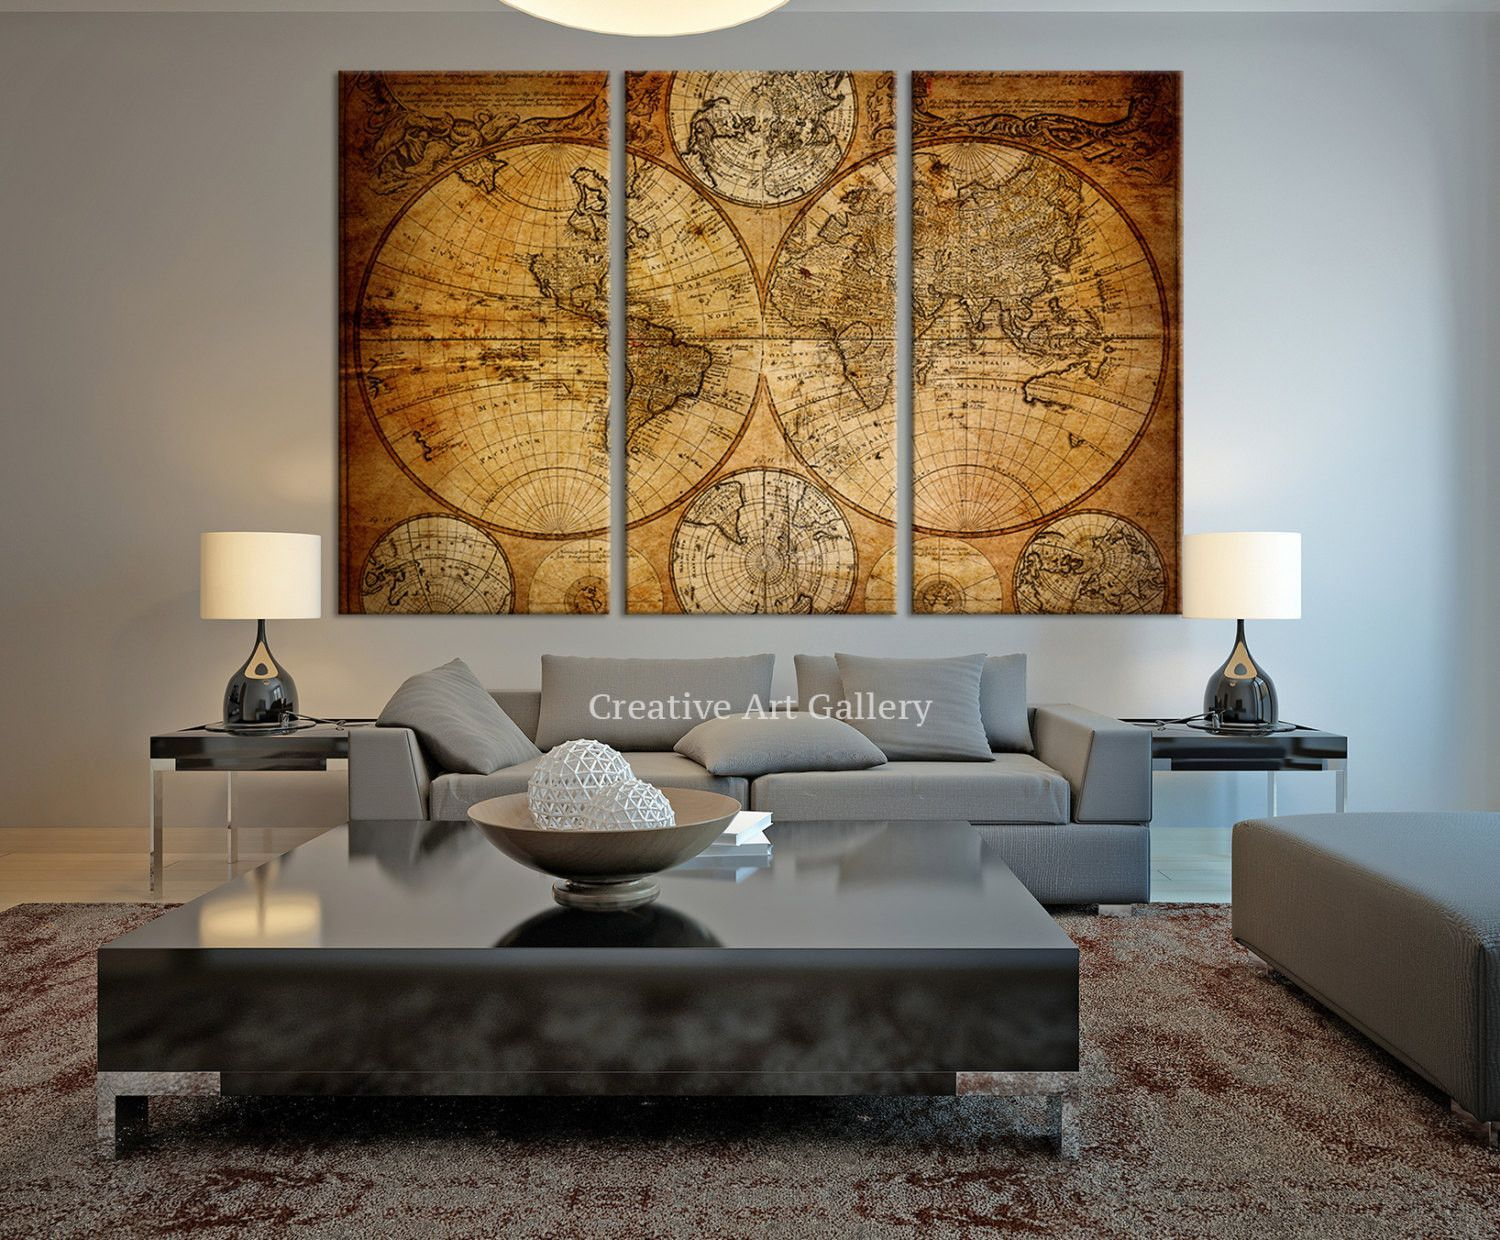 Vintage world map canvas art prints rustic world map art canvas vintage world map canvas art prints rustic world map art canvas print gumiabroncs Images